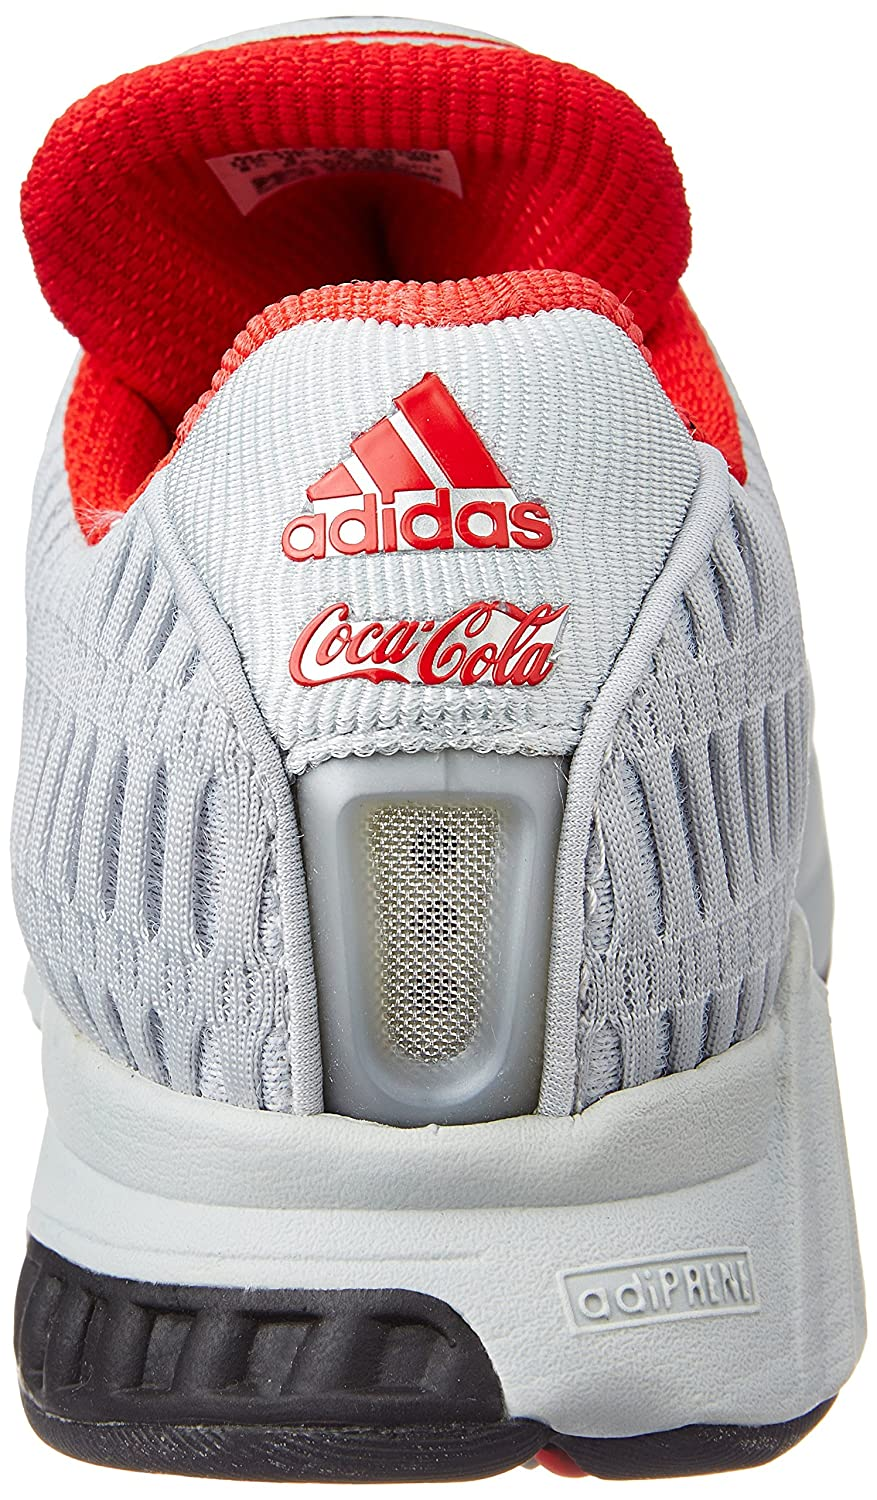 brand new c7043 f5df8 adidas Mens Clima Cool 1 Ba8611 Trainers adidas Originals Amazon.co.uk  Shoes  Bags